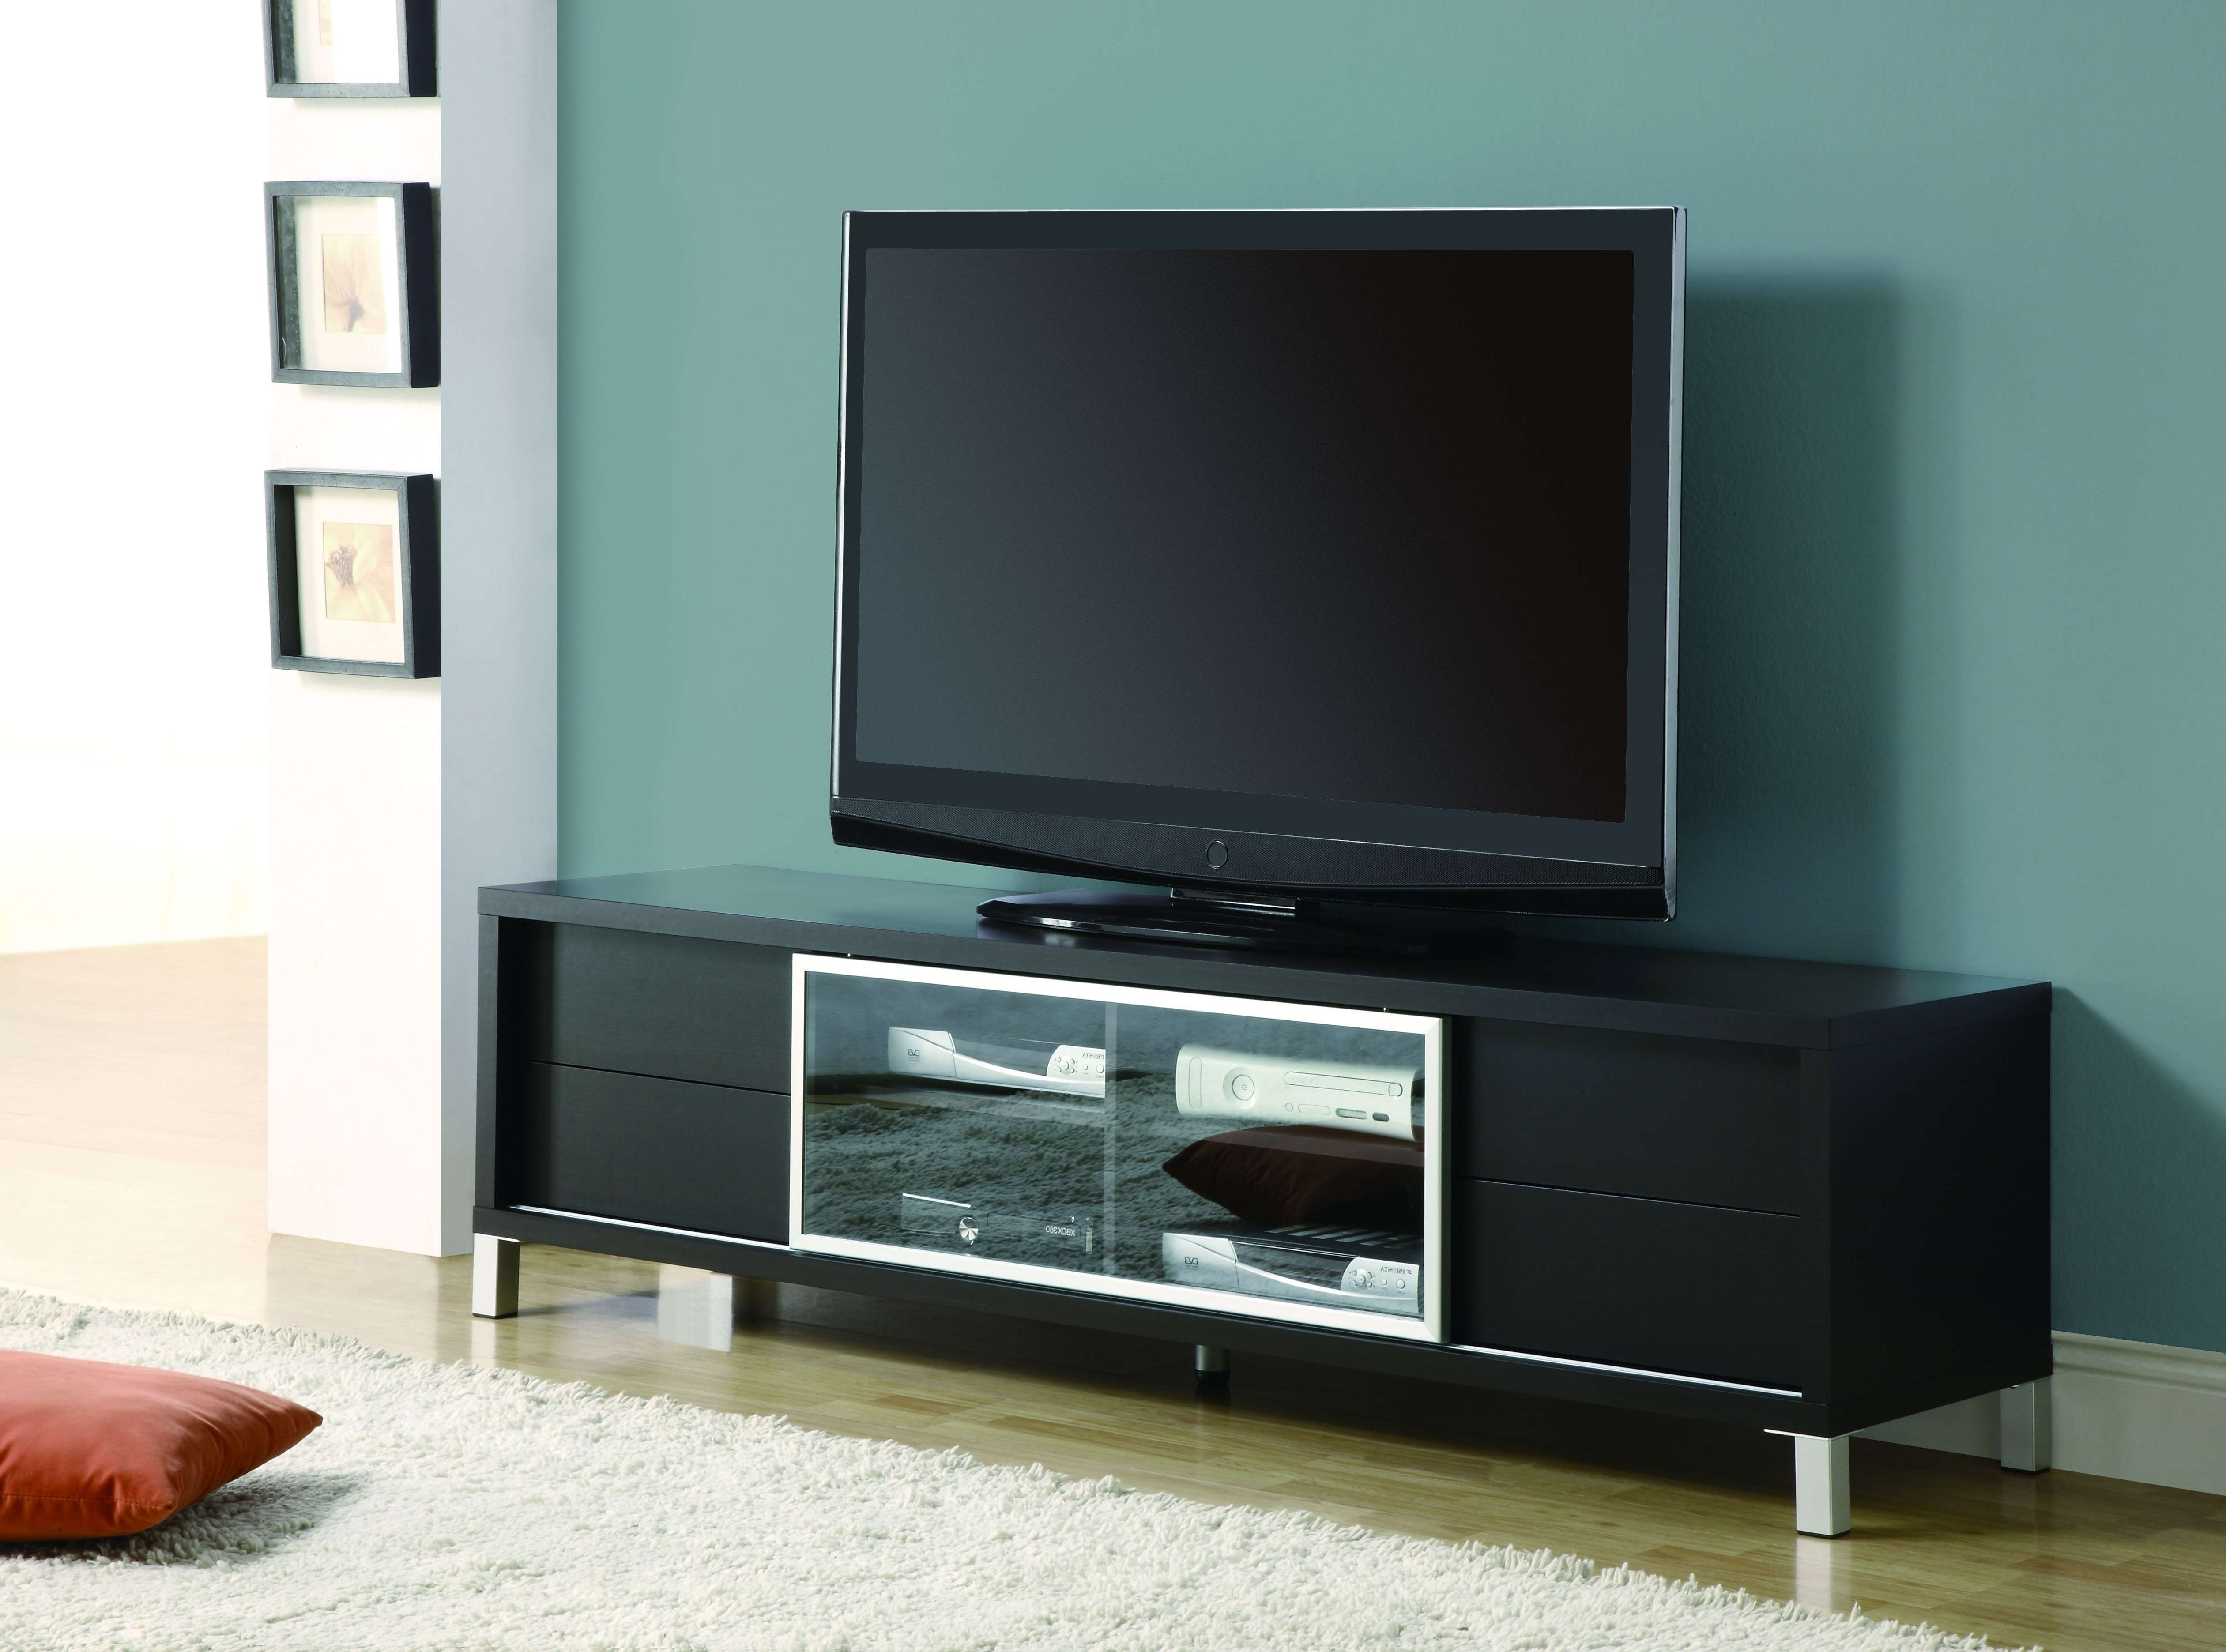 Square Stainless Based Tv Holder With Black Solid Wood Storage With Wood Tv Stands With Glass Top (View 7 of 15)